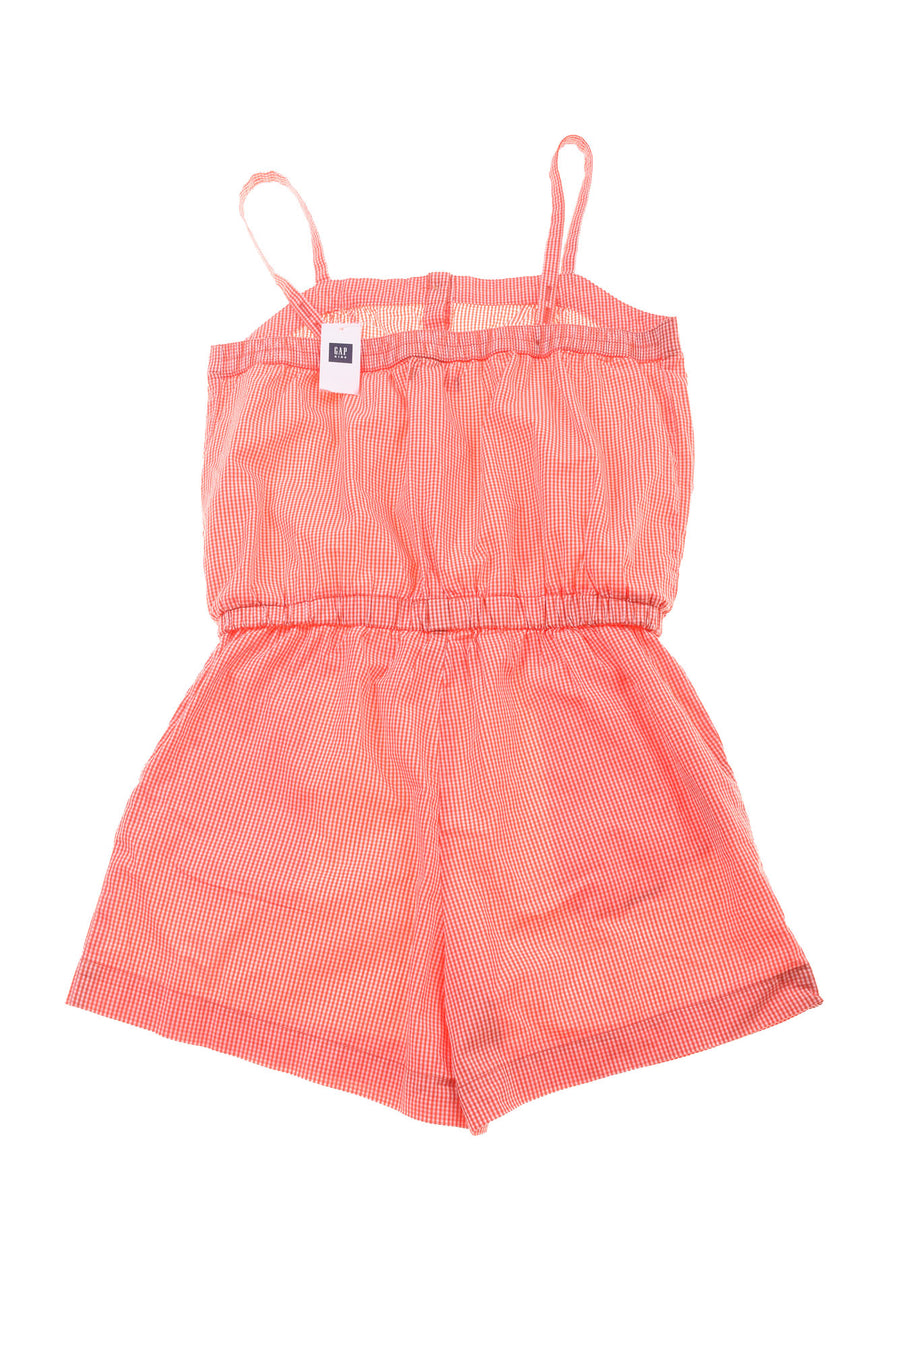 NEW Gap Kids Girl's Romper Large Orange